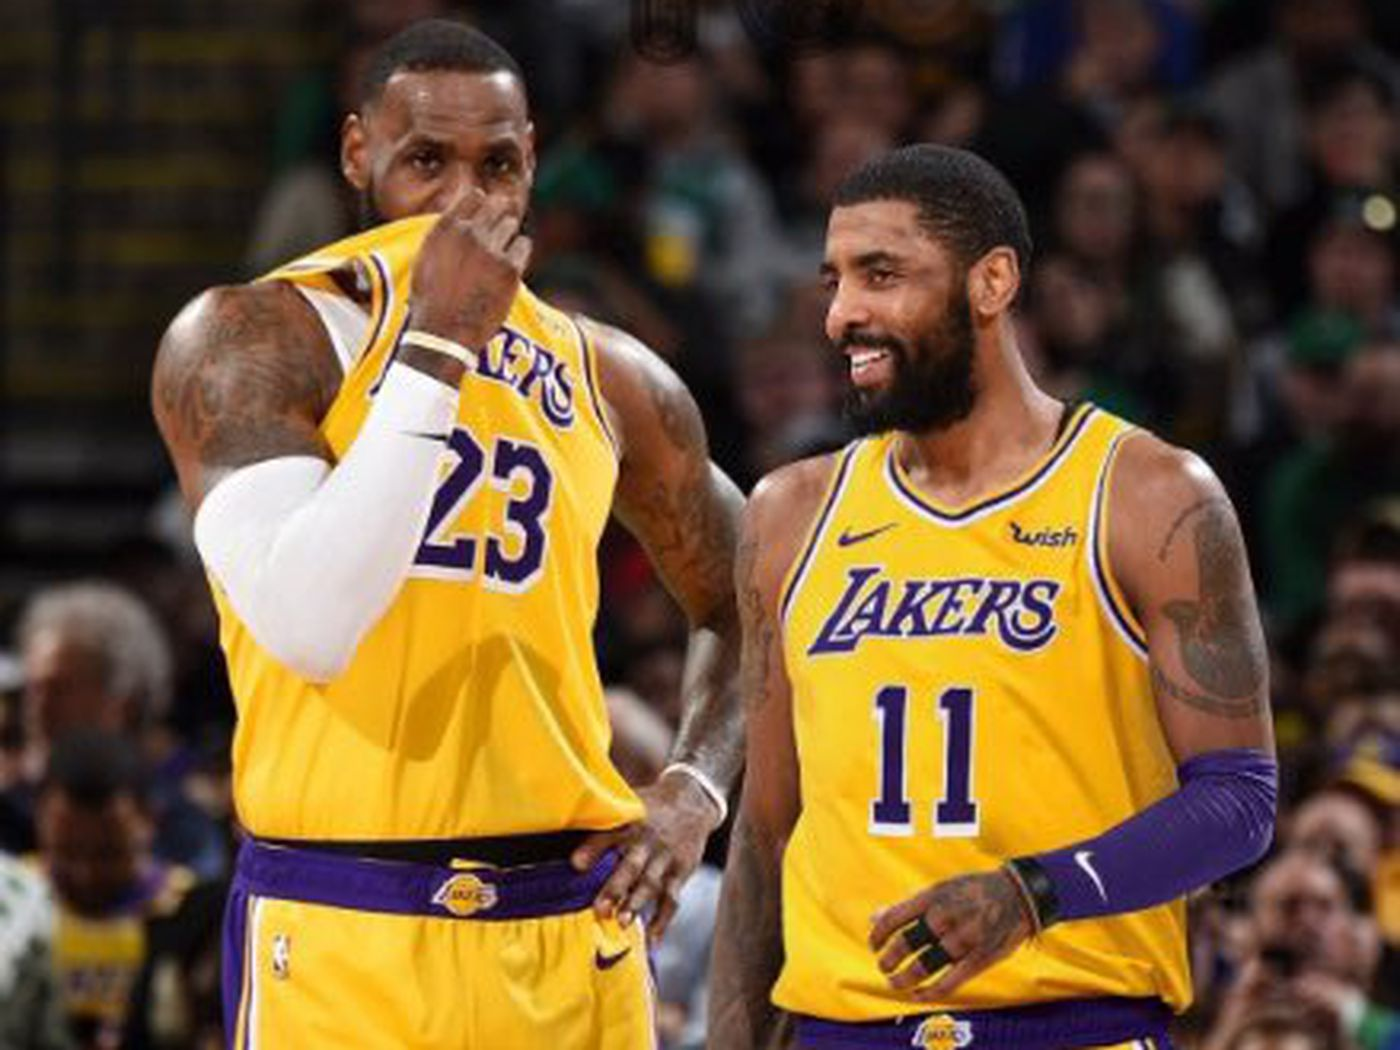 promo code 4a1df 24a4c Lakers Free Agency Rumors  Kyrie Irving  is considering  L.A., LeBron James  is trying to recruit him - Silver Screen and Roll